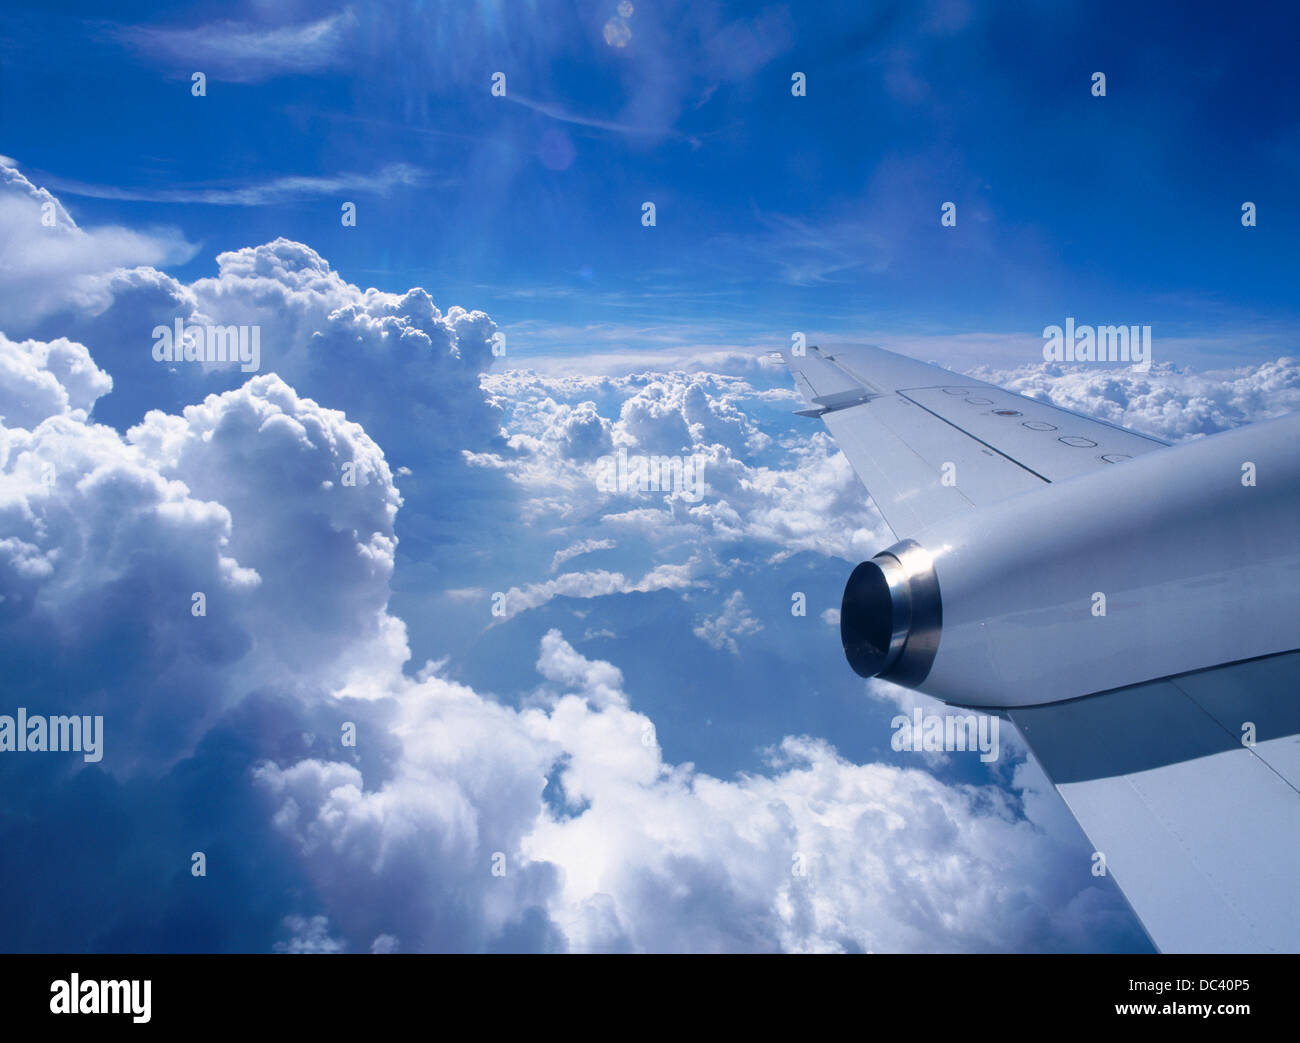 Clouds from ´Saab 2000 Cityliner´ - Stock Image